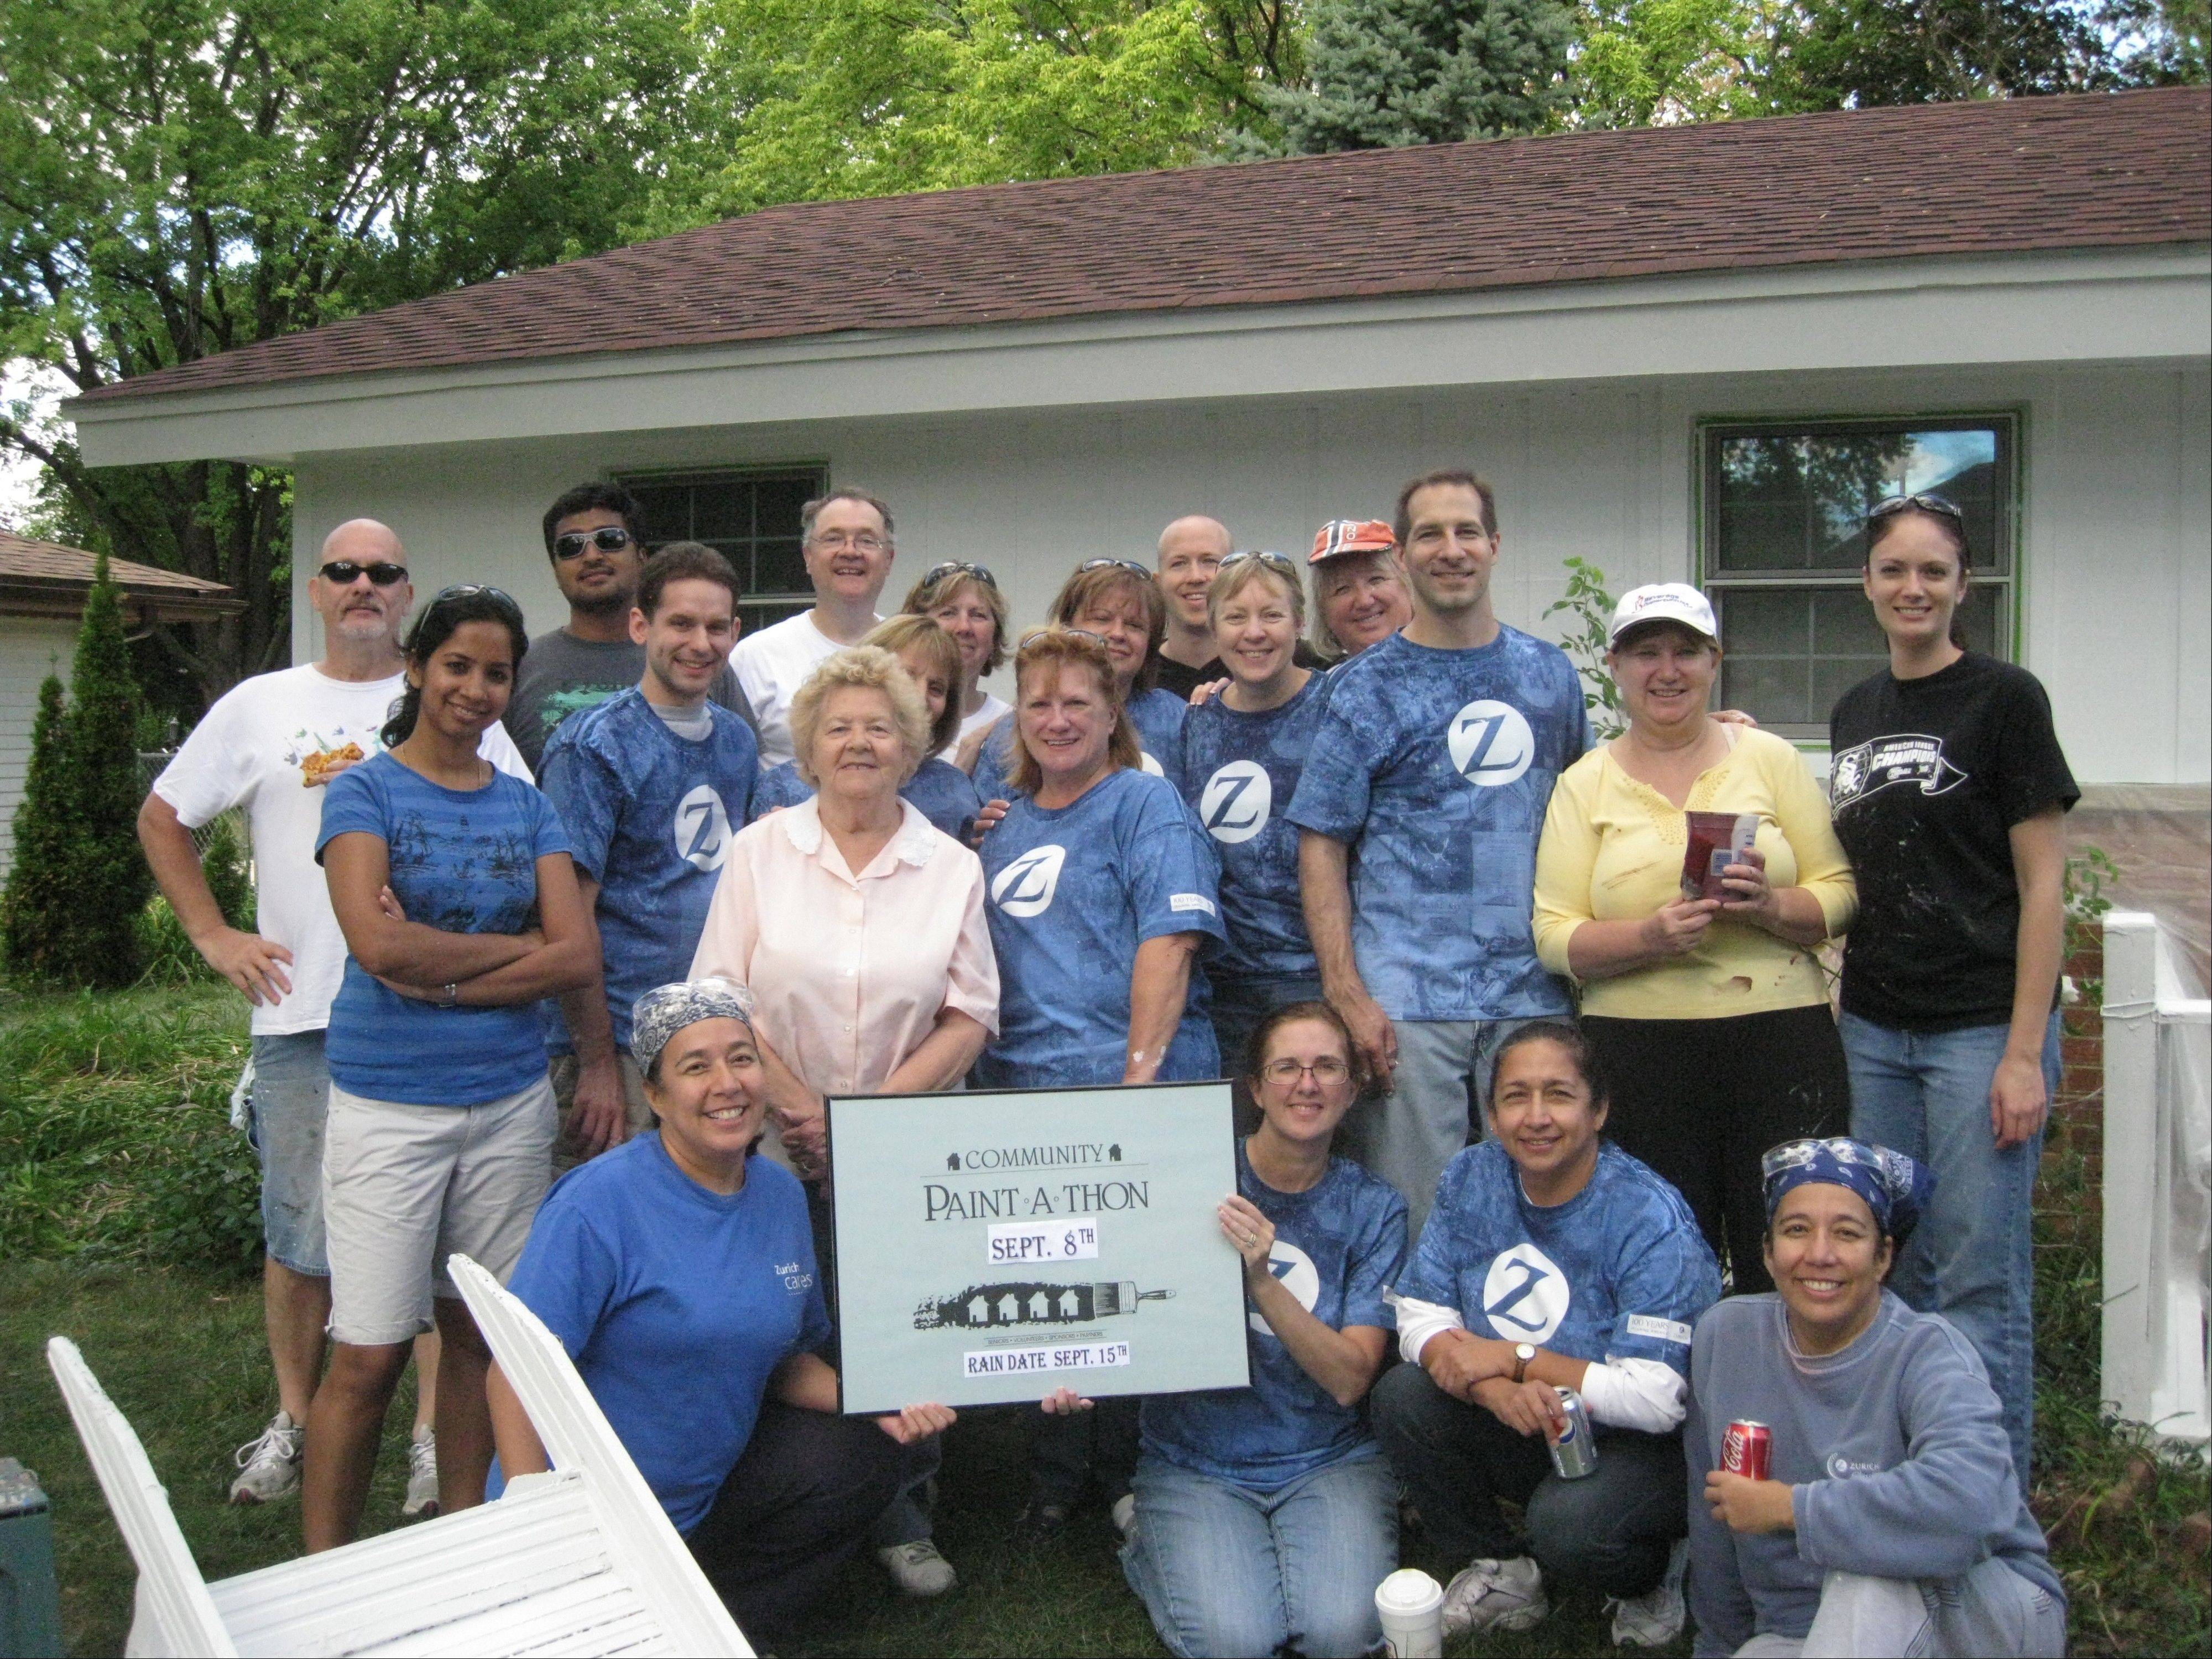 The Zurich Team takes a break at the 2012 Paint-A-Thon event.